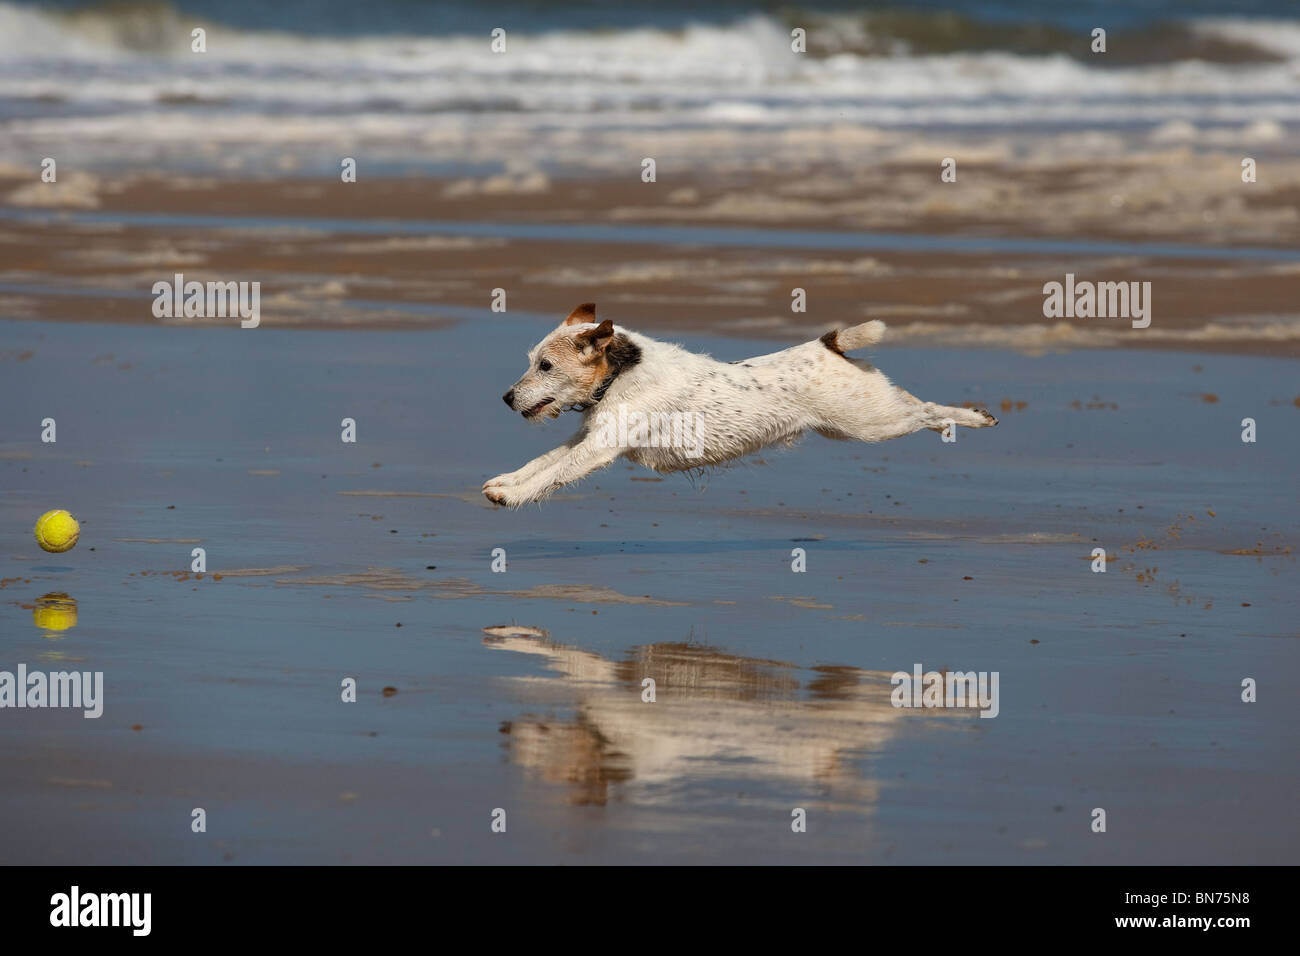 Jack Russell Terrier running on beach and reflected in wet sand - Stock Image